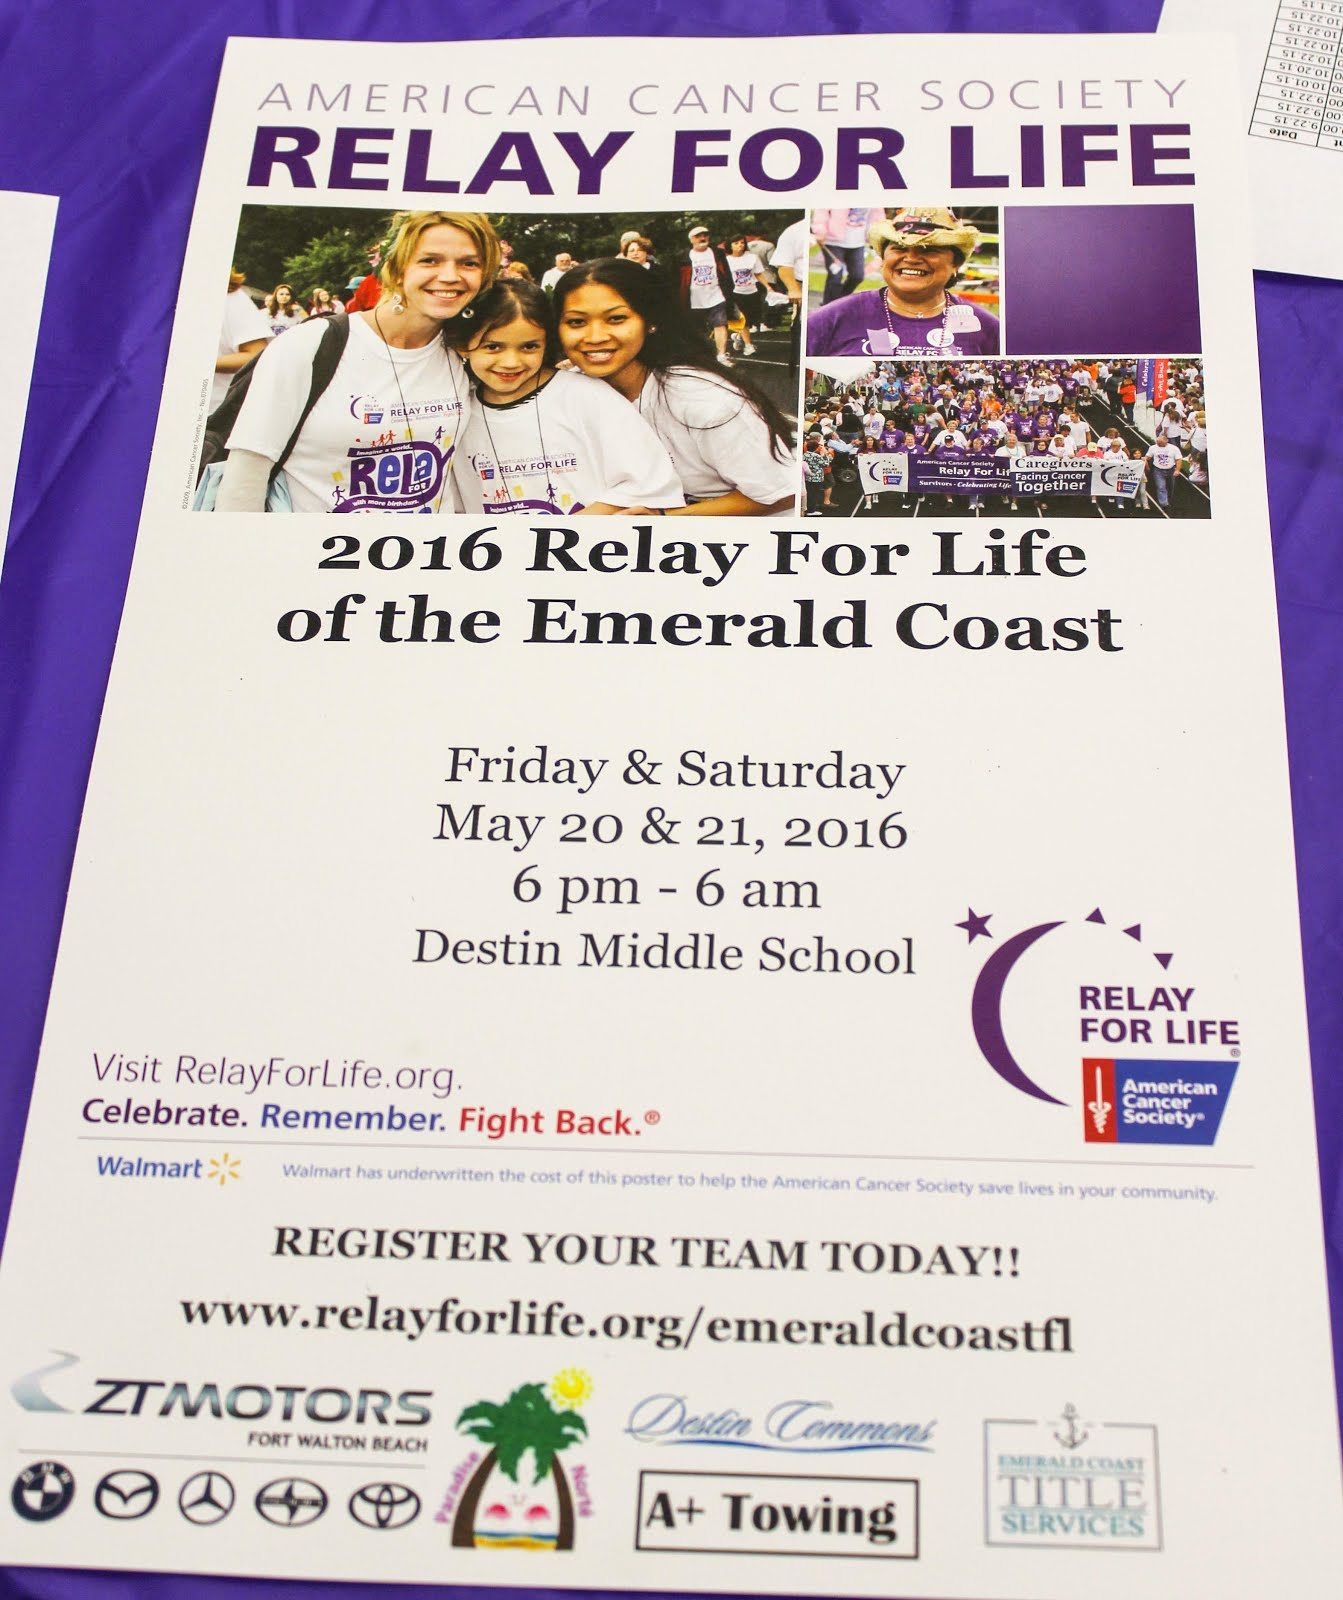 Did you know that more than four million people in over twenty countries raise awareness and funds to save lives from cancer through the relay for life